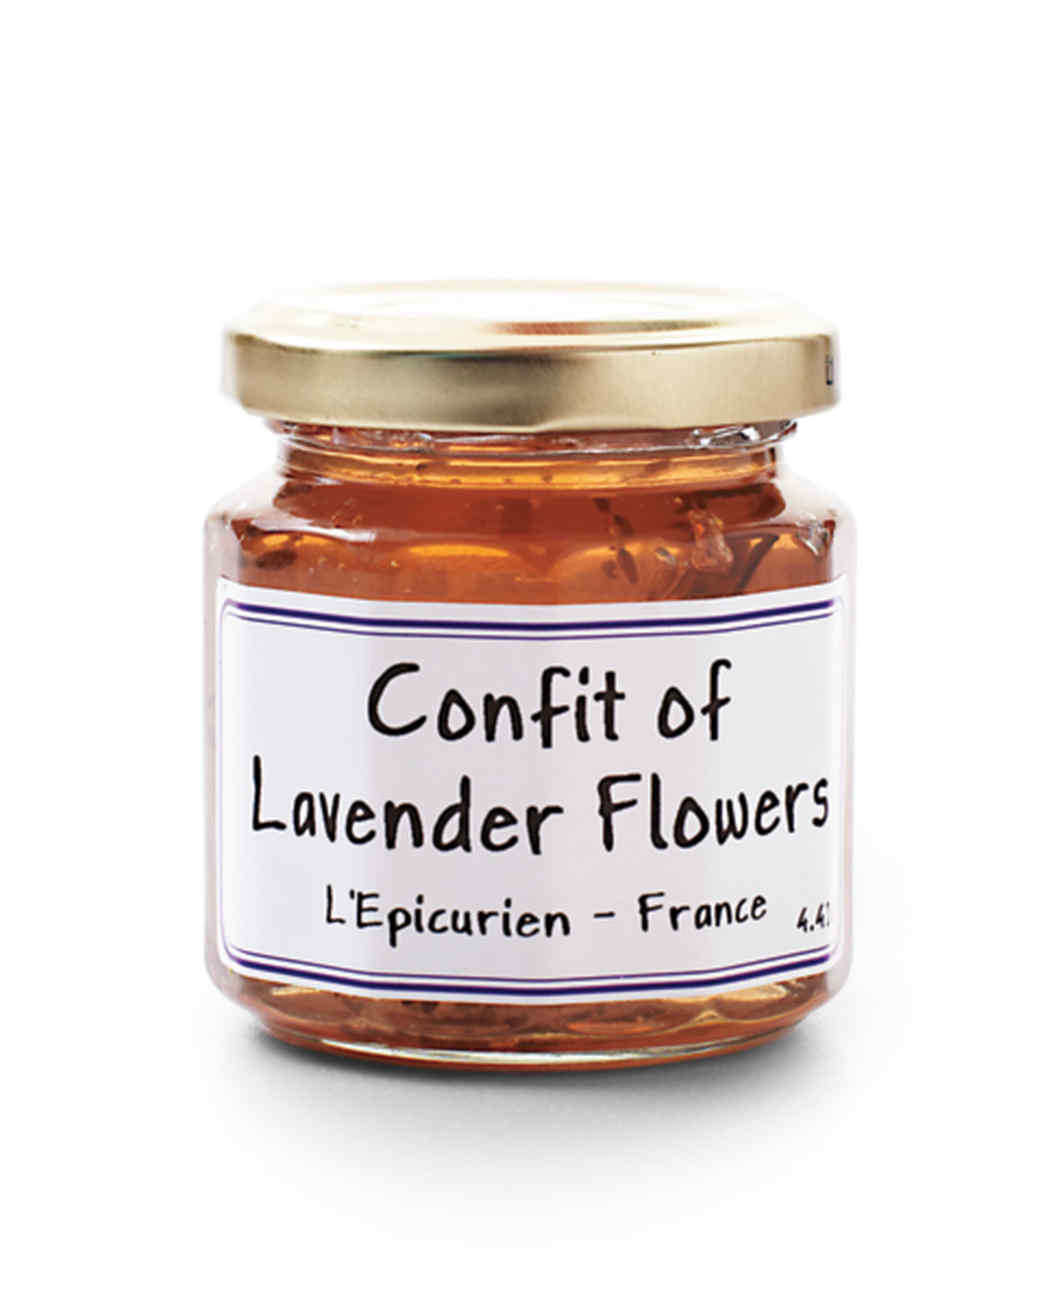 easy-entertaining-lavender-confit-mld108950.jpg